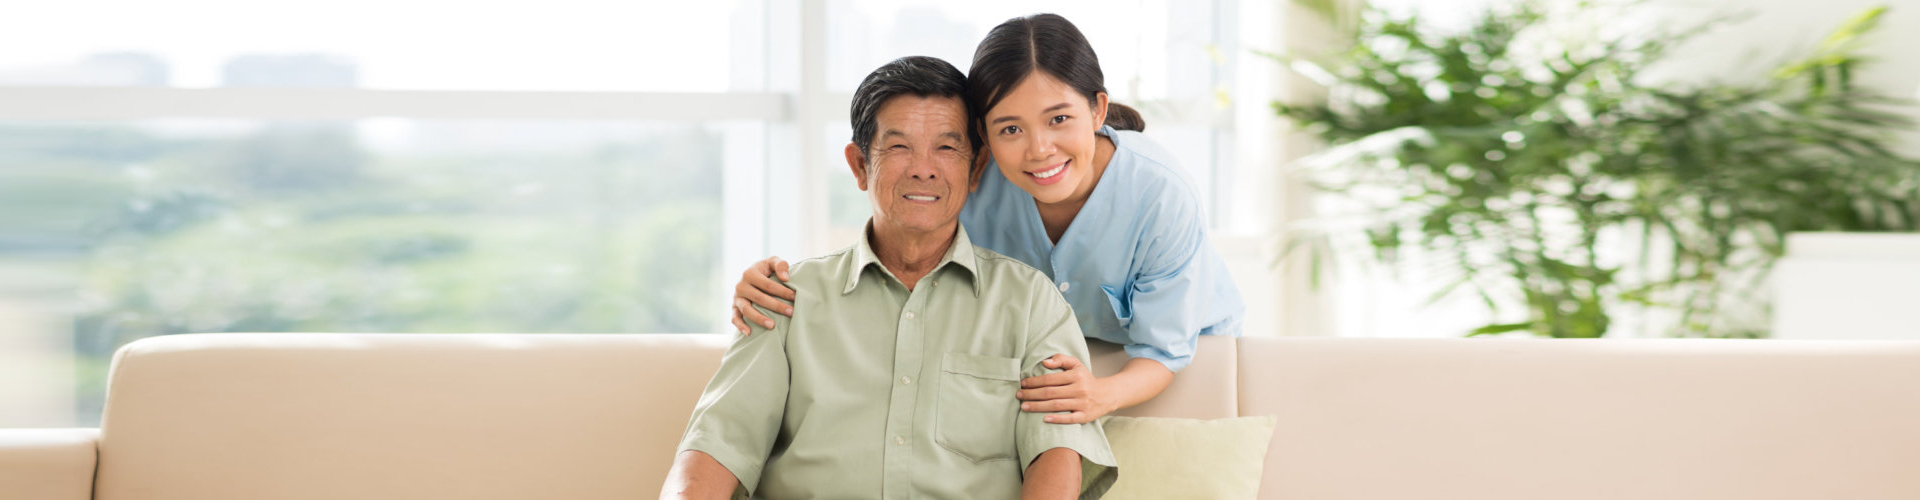 caregiver and an elderly man smiling at the camera